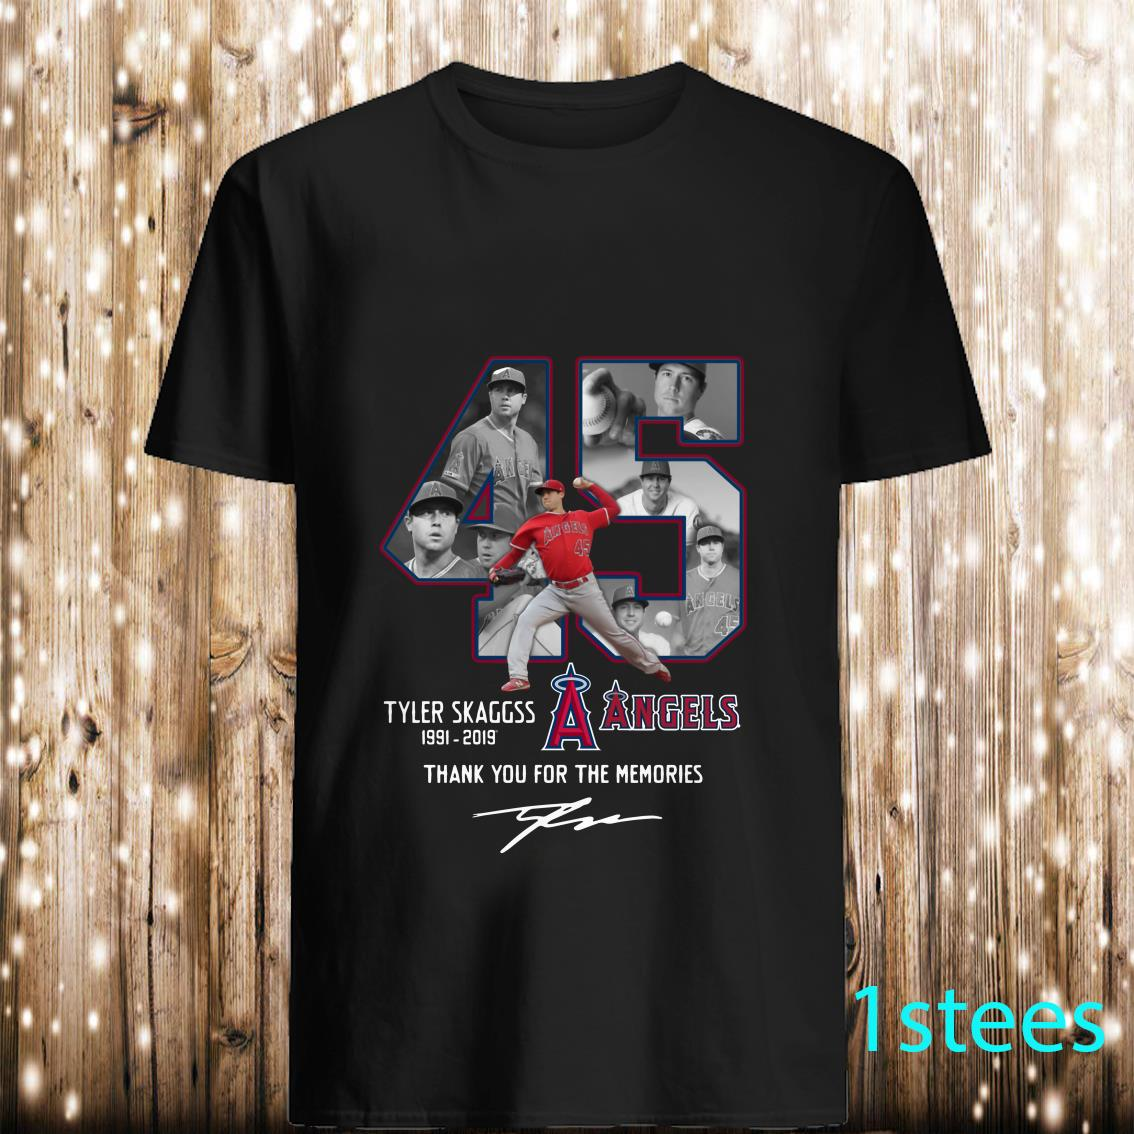 Allbluea Angels 45 Tyler Skaggs 1991 2019 Thank You for The Memories Shirt